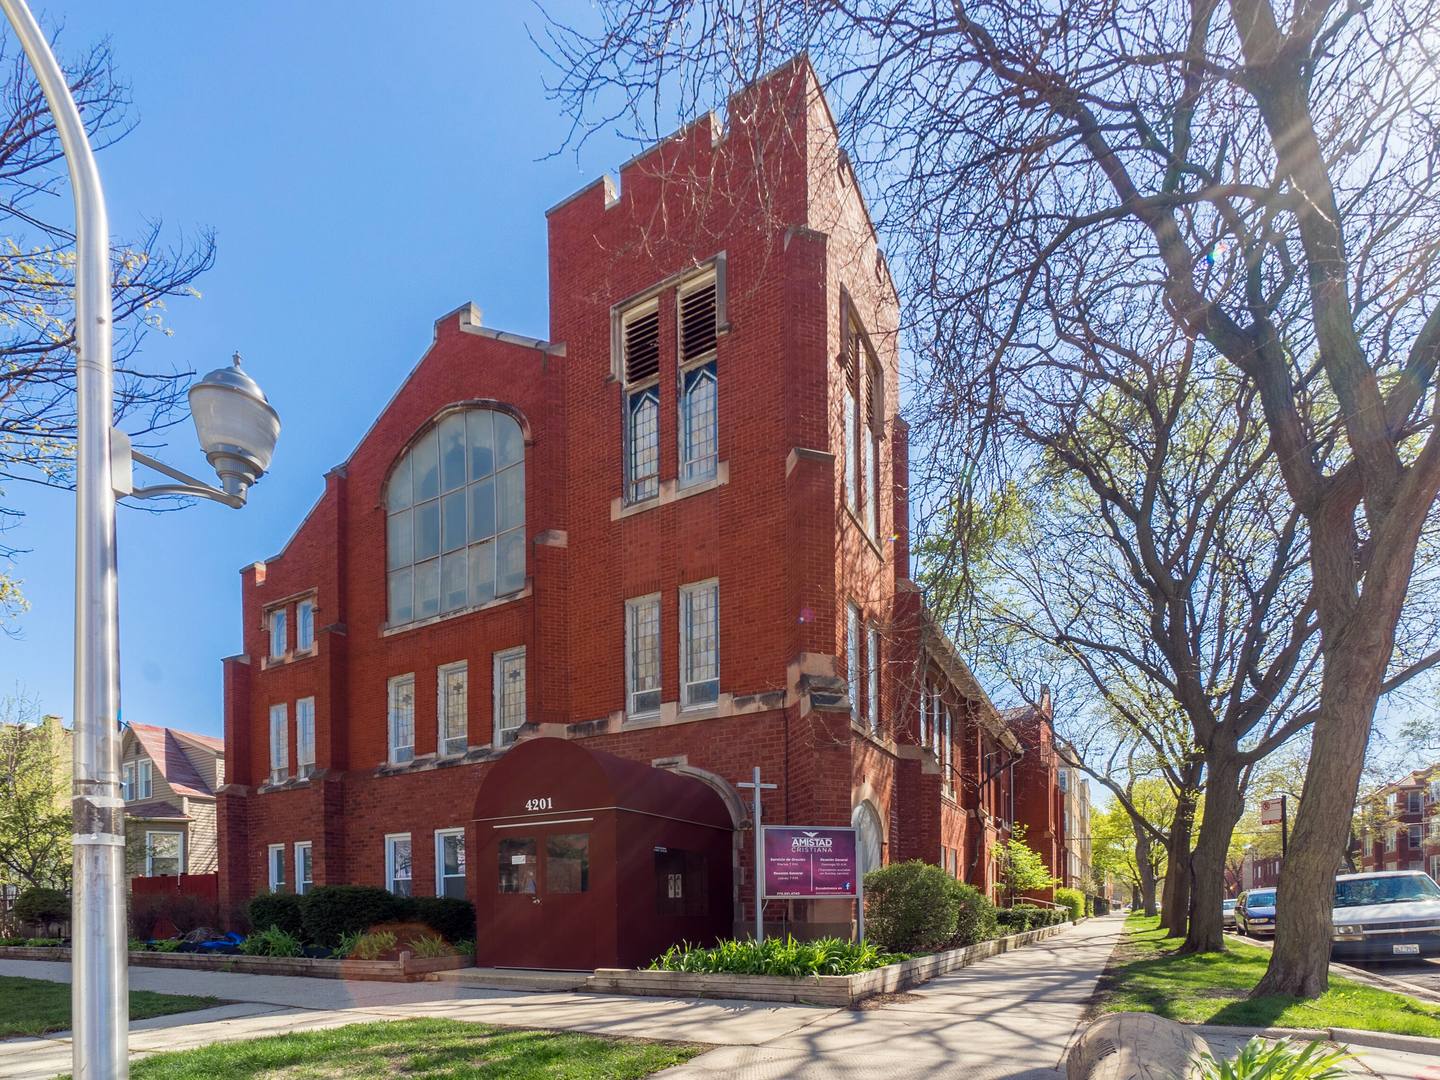 4201 NORTH TROY STREET, CHICAGO, IL 60618